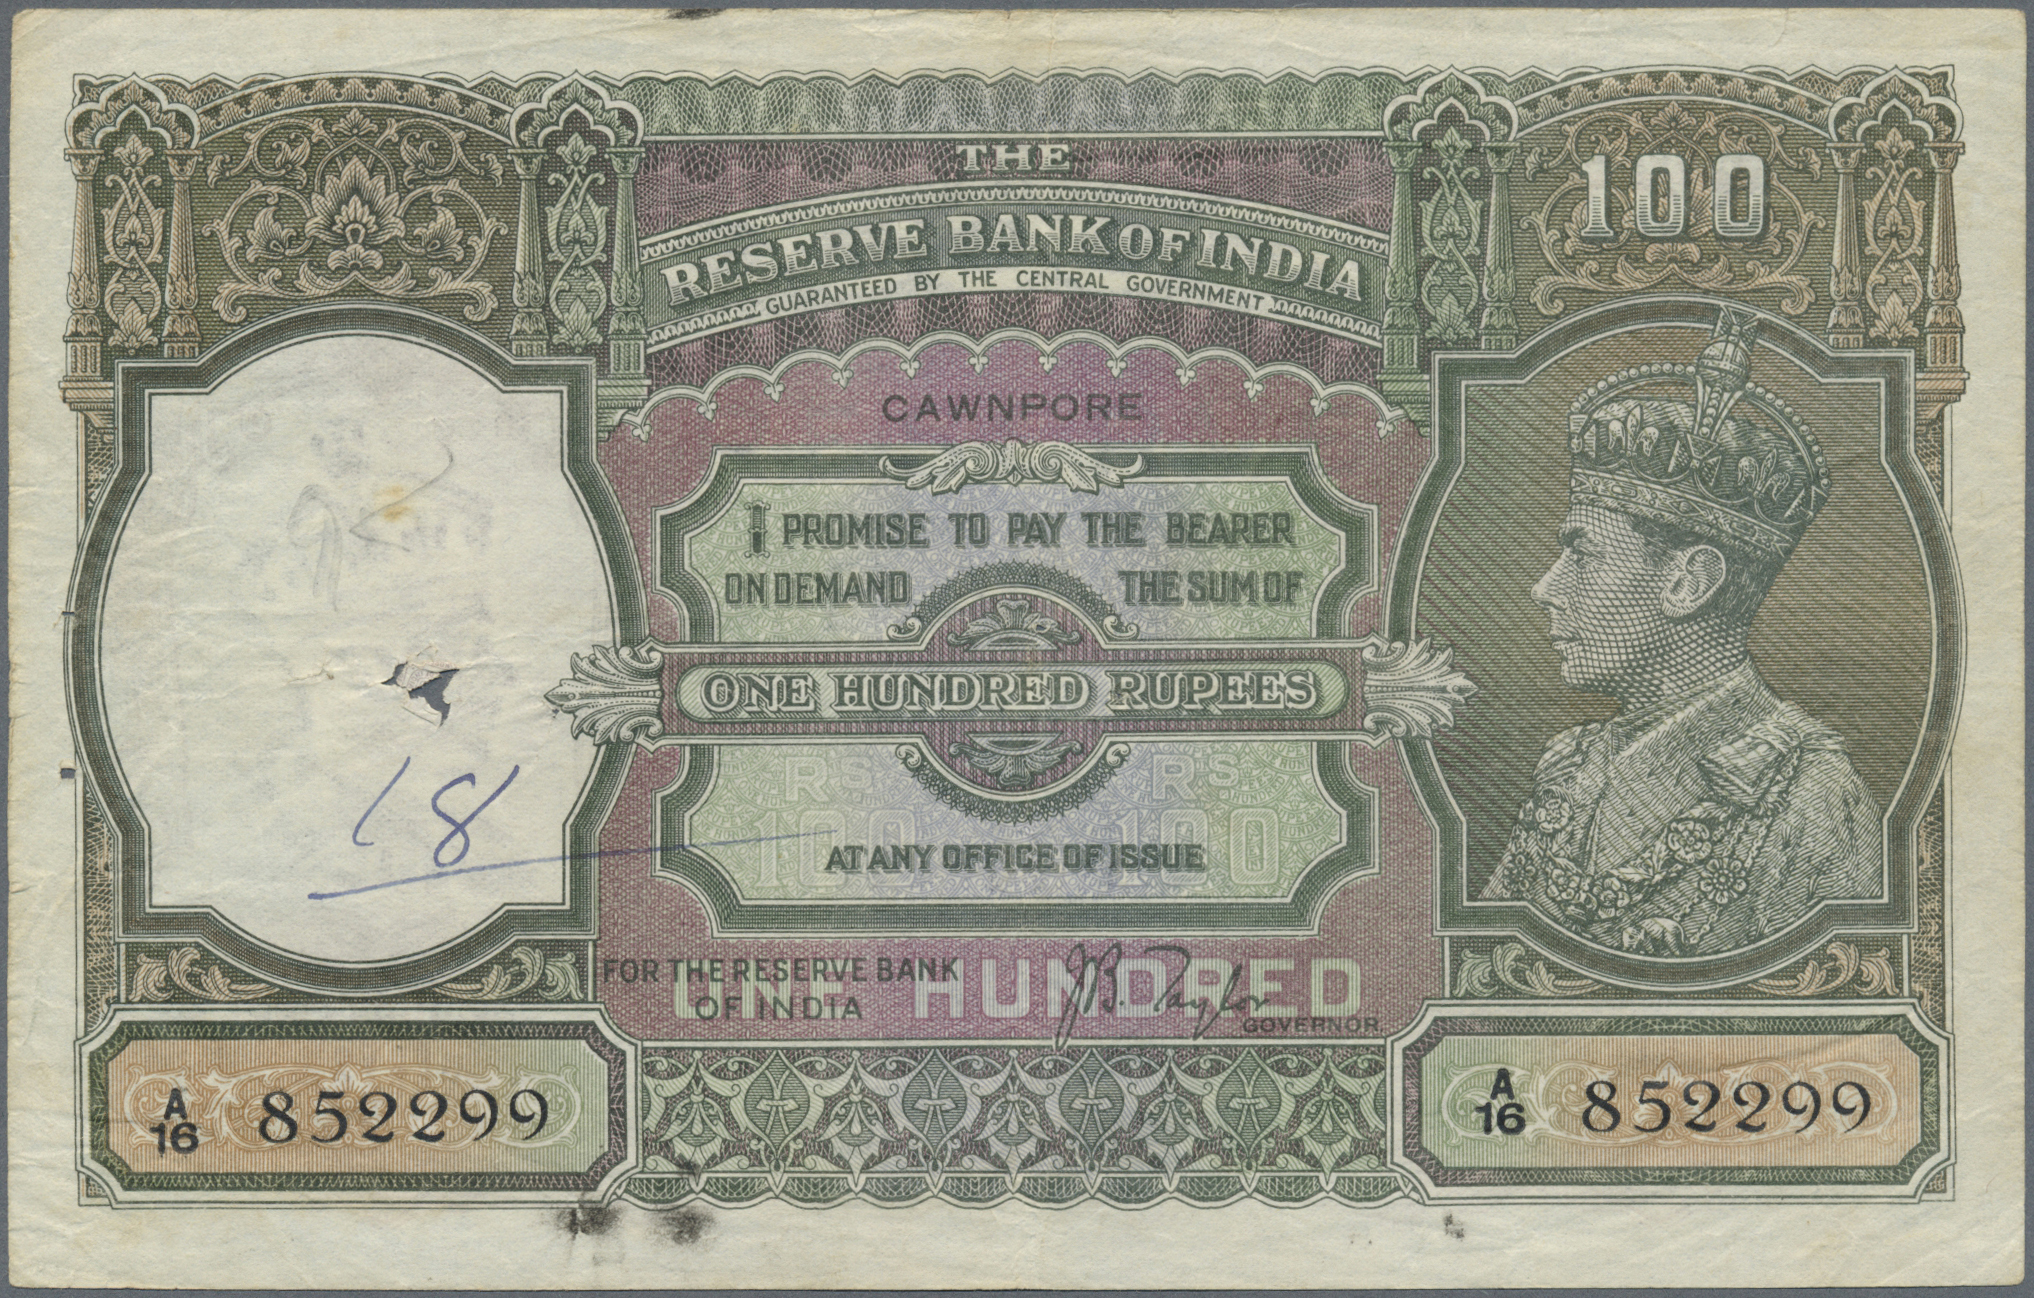 Lot 831 - India / Indien | Banknoten  -  Auktionshaus Christoph Gärtner GmbH & Co. KG Banknotes Worldwide Auction #39 Day 1